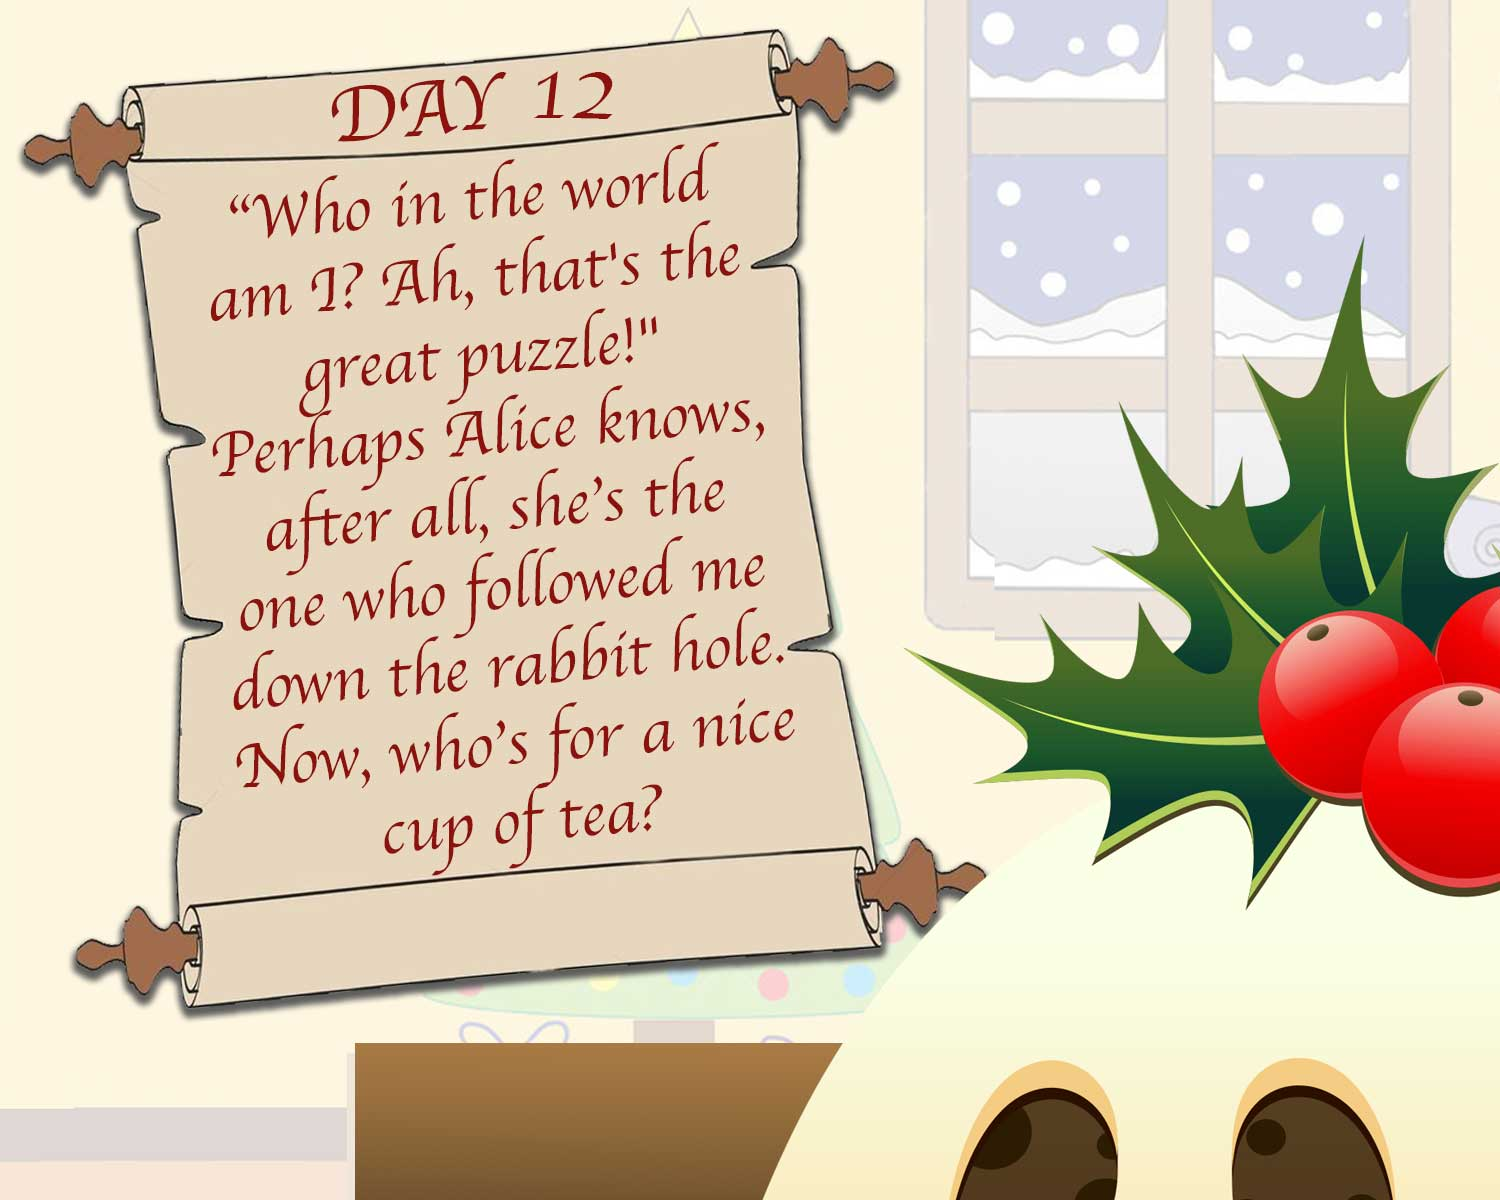 DAY 12 - THE GREAT CHRISTMAS PUDDING HUNT